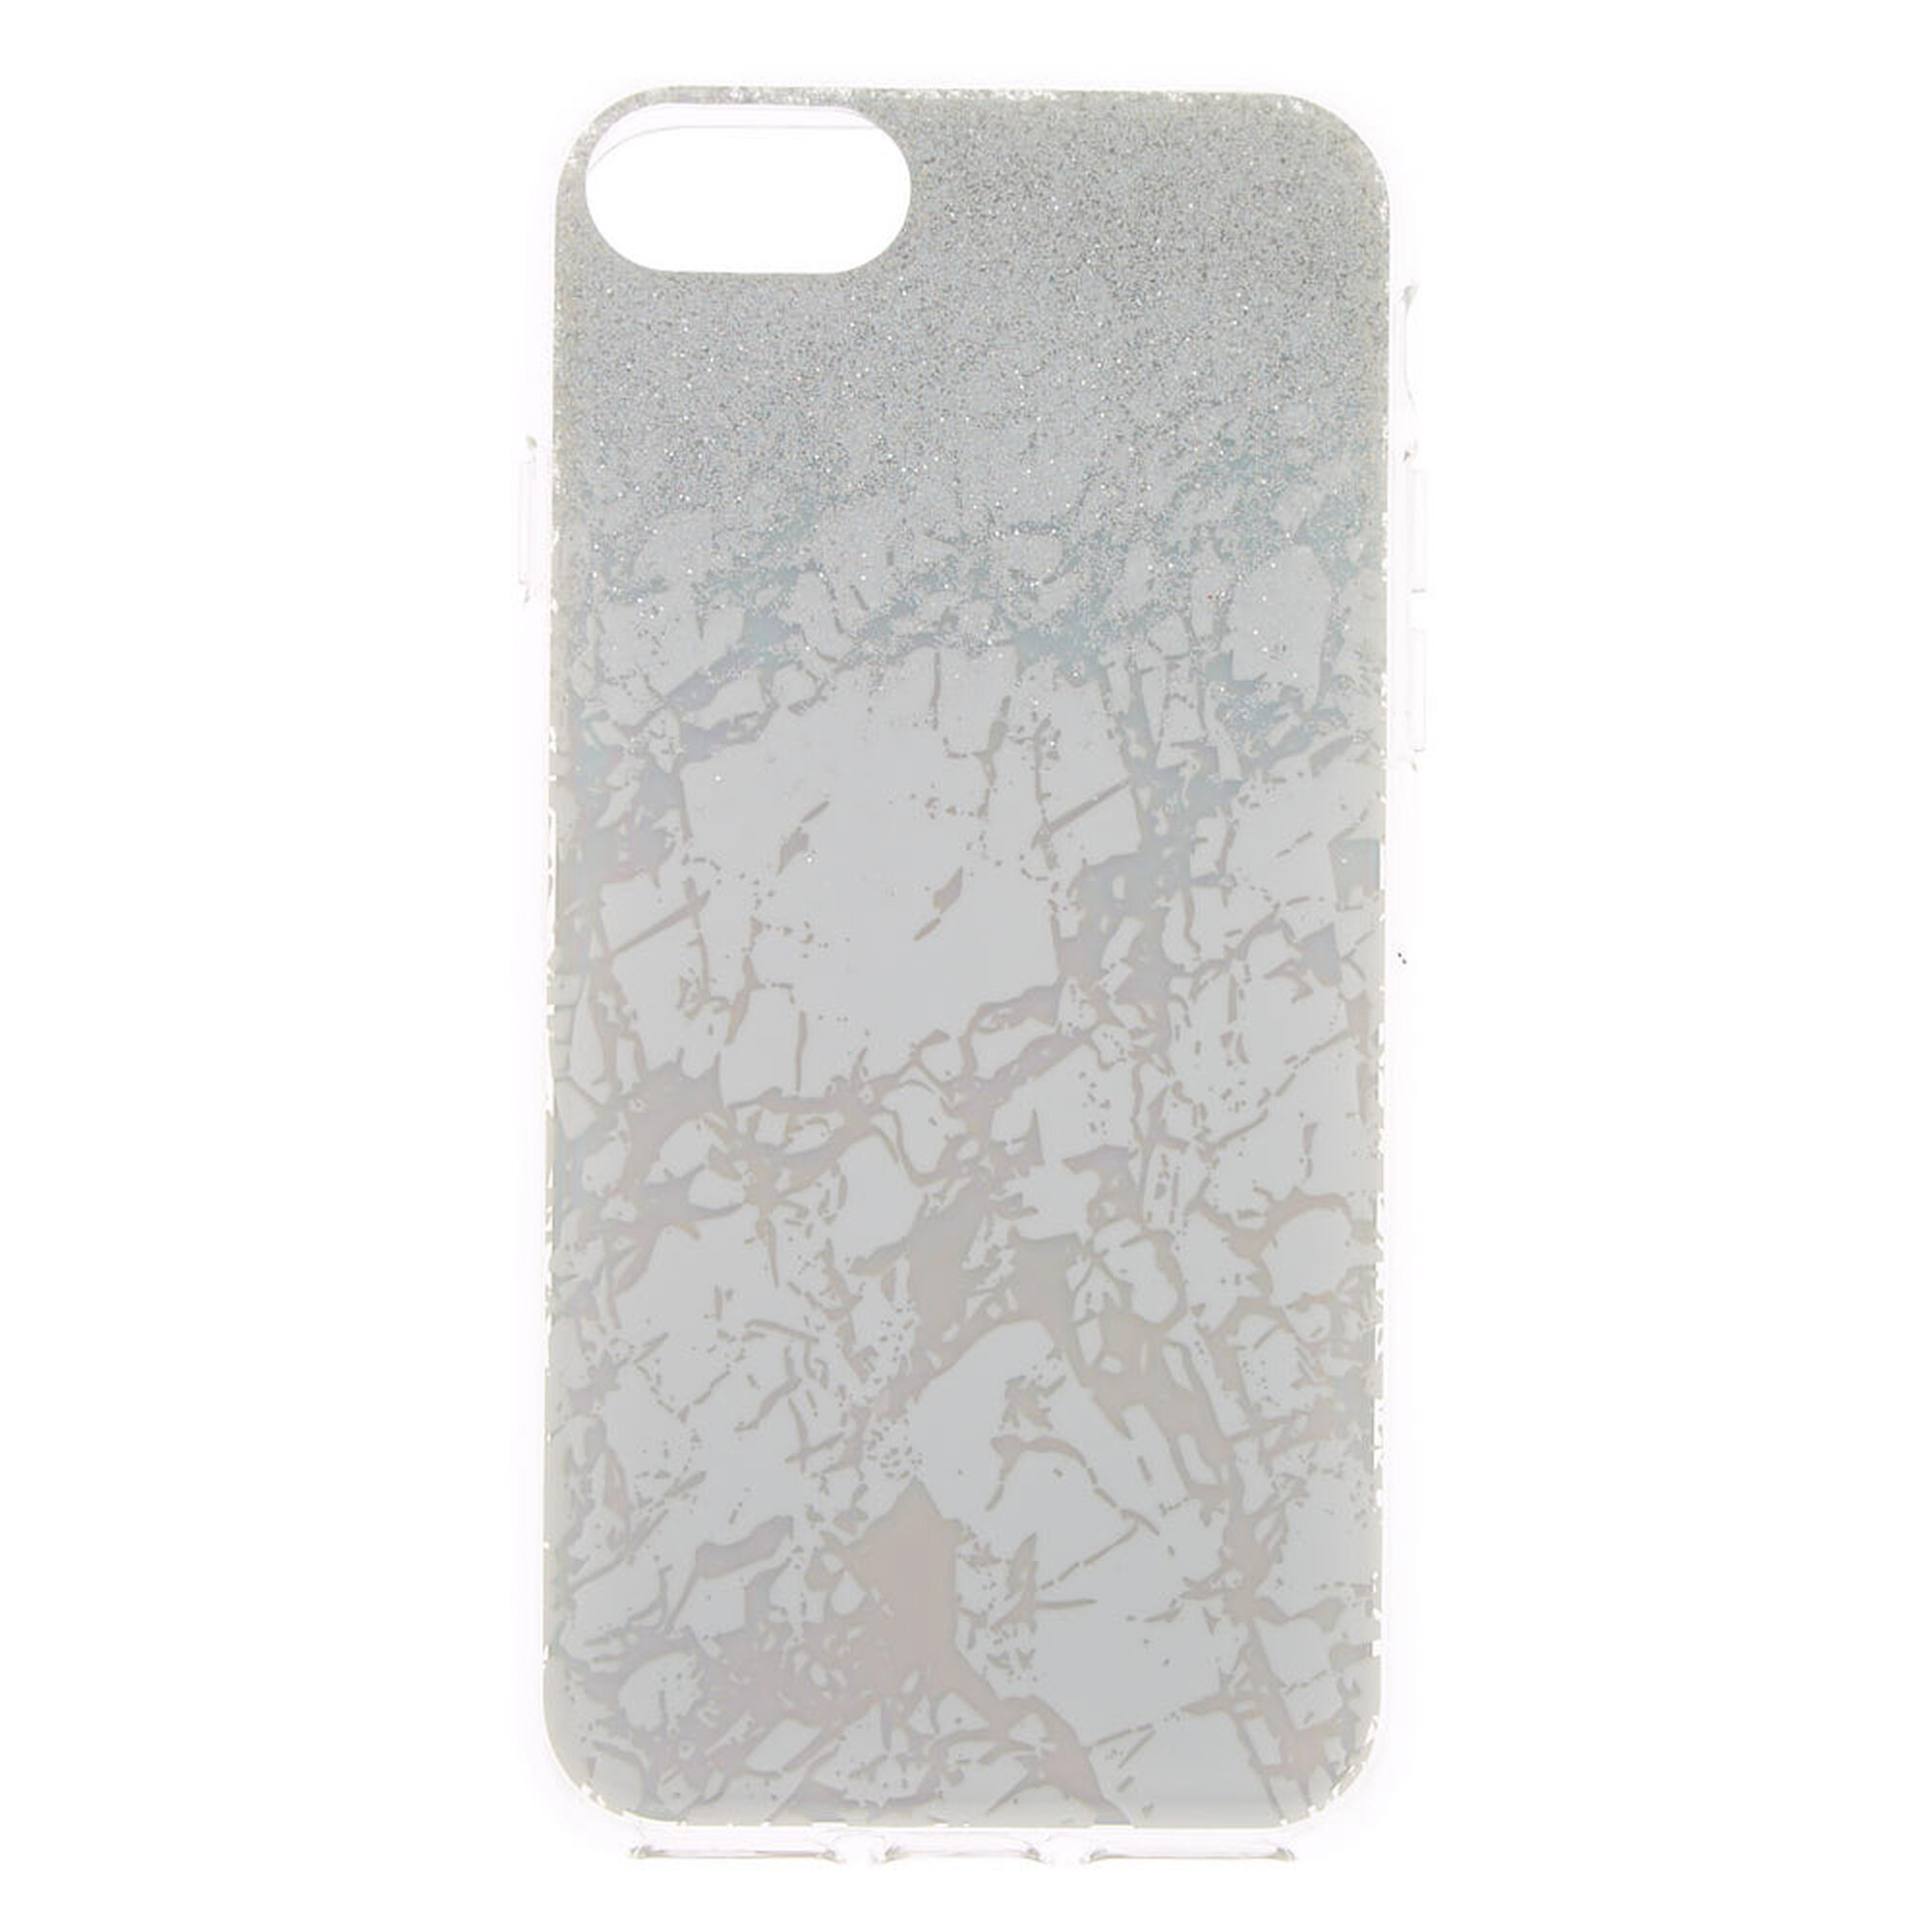 competitive price 416a9 880f2 Holographic Glitter Marble Phone Case - Fits iPhone 6/7/8